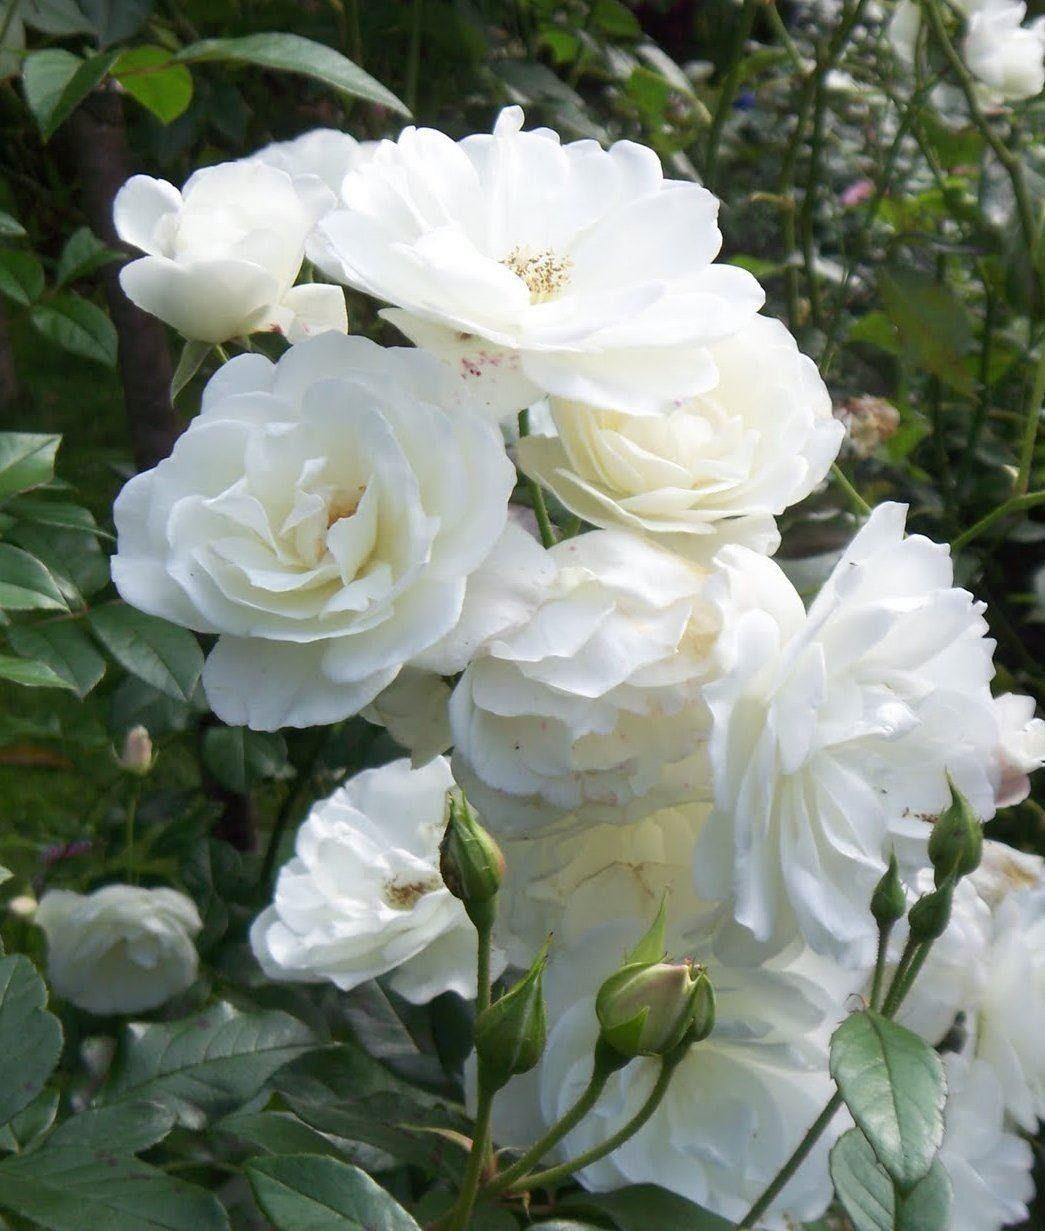 Iceburg Is Famous As One Of The Best White Garden Roses In The World